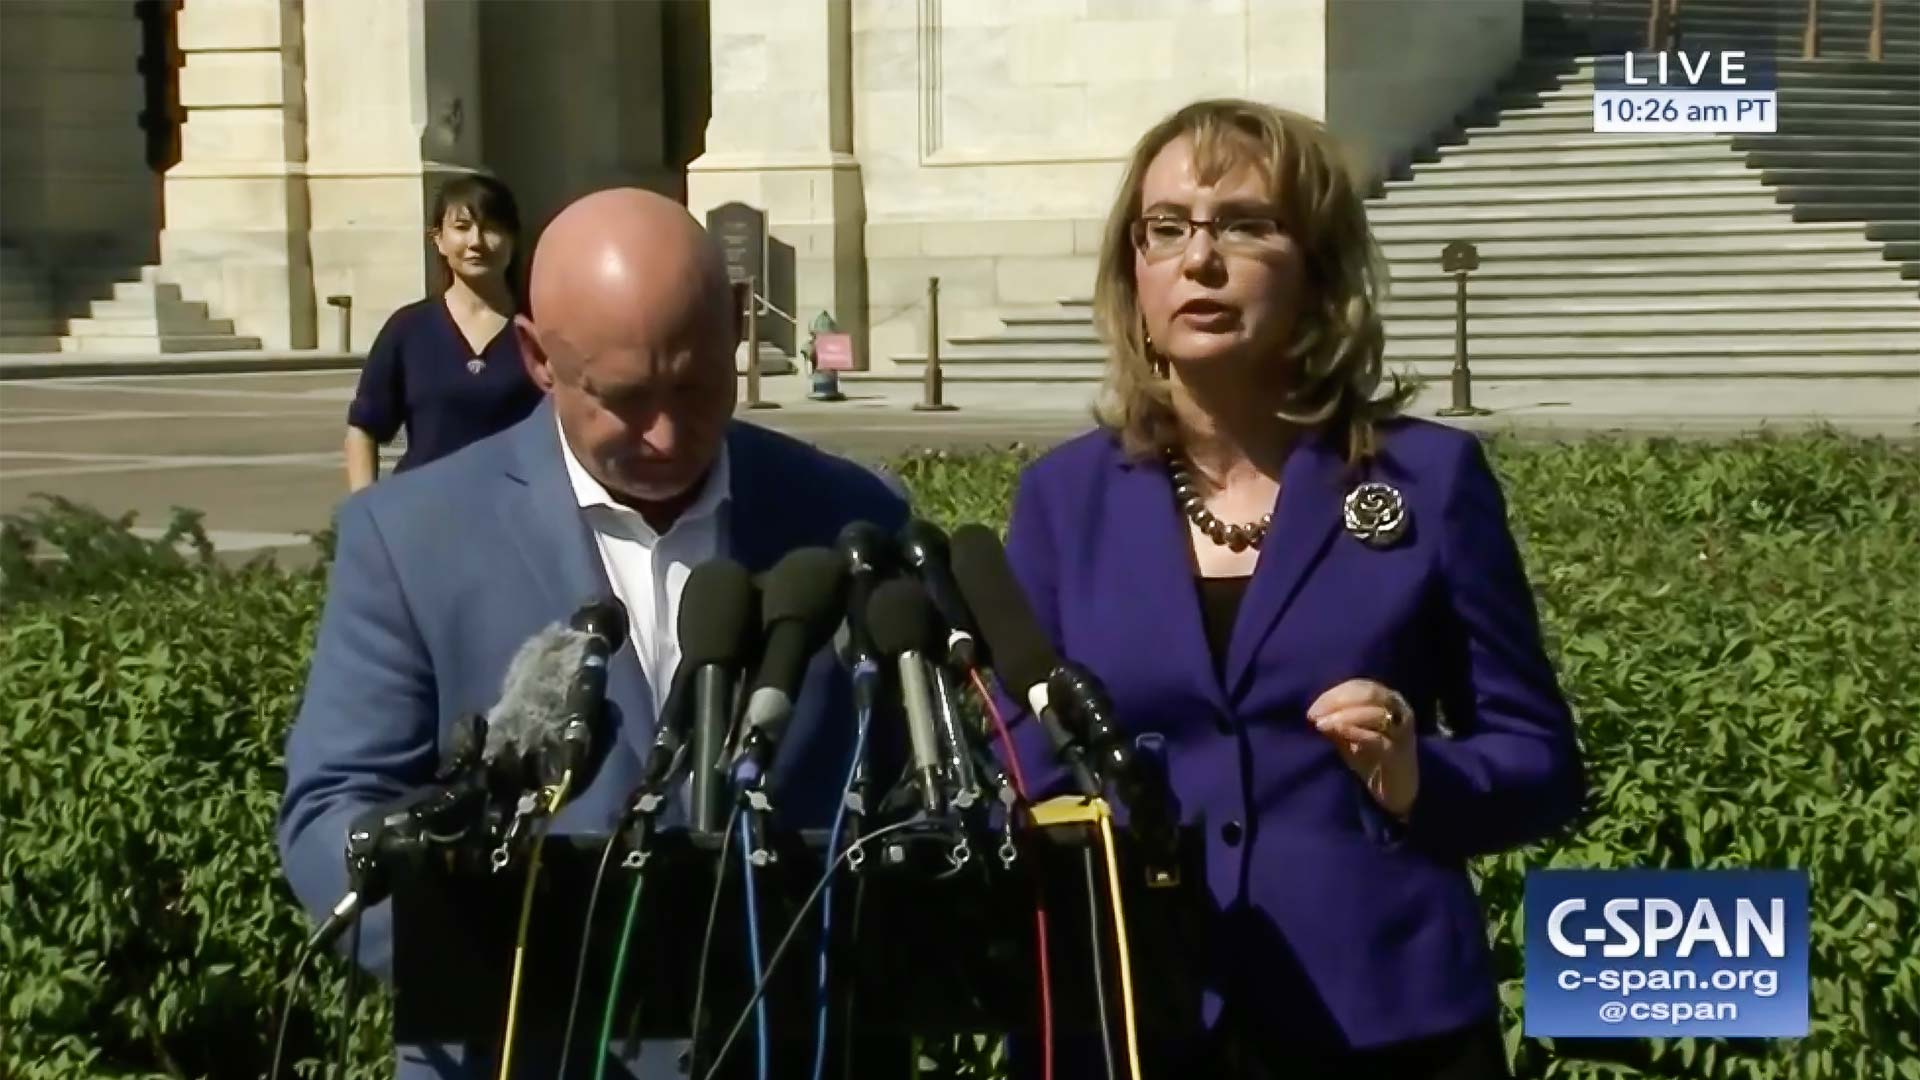 Retired astronaut Mark Kelly and former Congresswoman Gabrielle Giffords speak on gun control Oct. 2, 2017, the day after a mass shooting in Las Vegas.